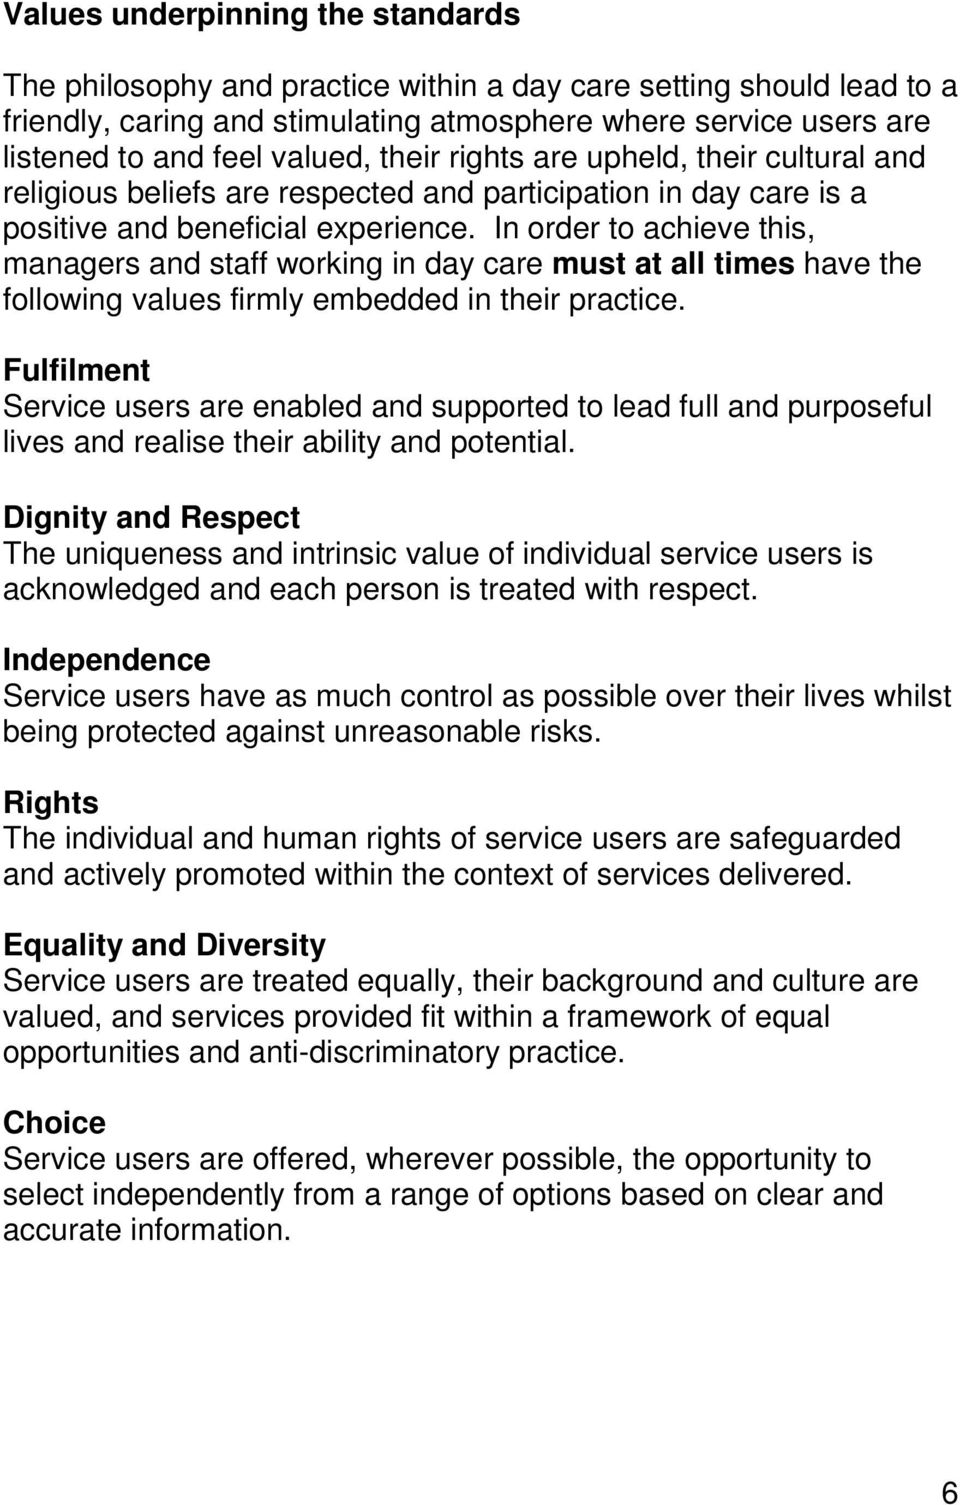 In order to achieve this, managers and staff working in day care must at all times have the following values firmly embedded in their practice.